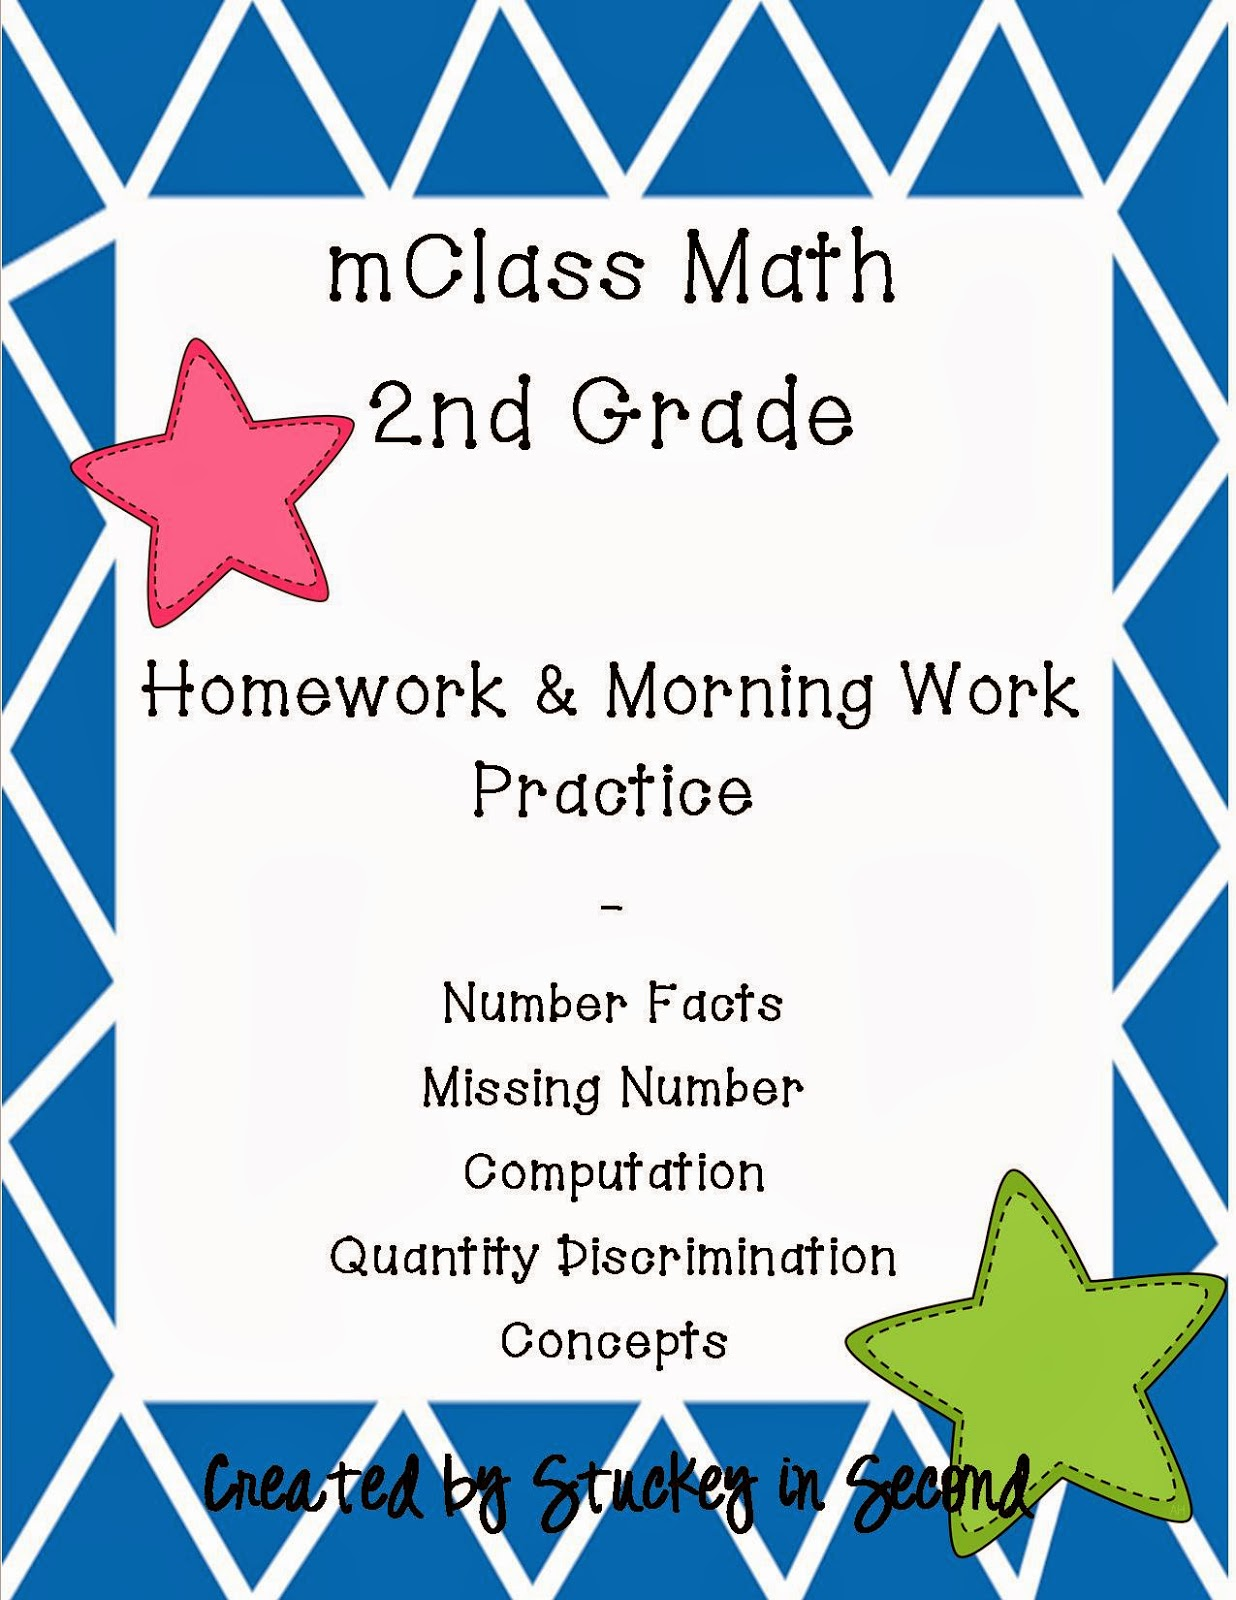 http://www.teacherspayteachers.com/Product/mClass-Math-Practice-Grade-2-Mega-Pack-704200